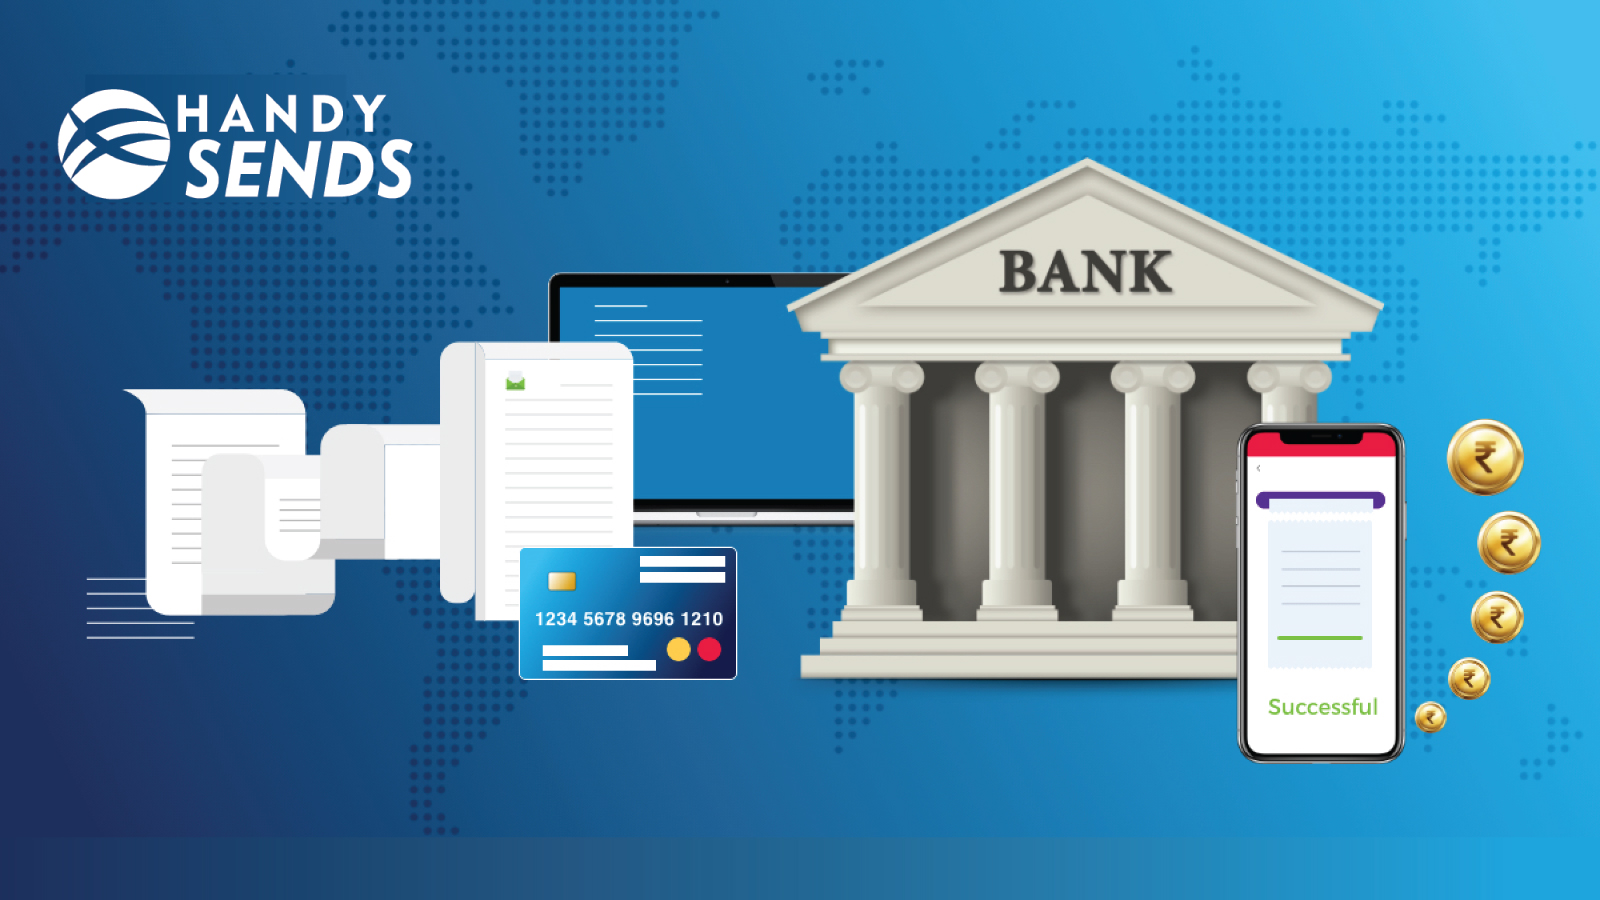 Transactional Email Service For Banking Industry